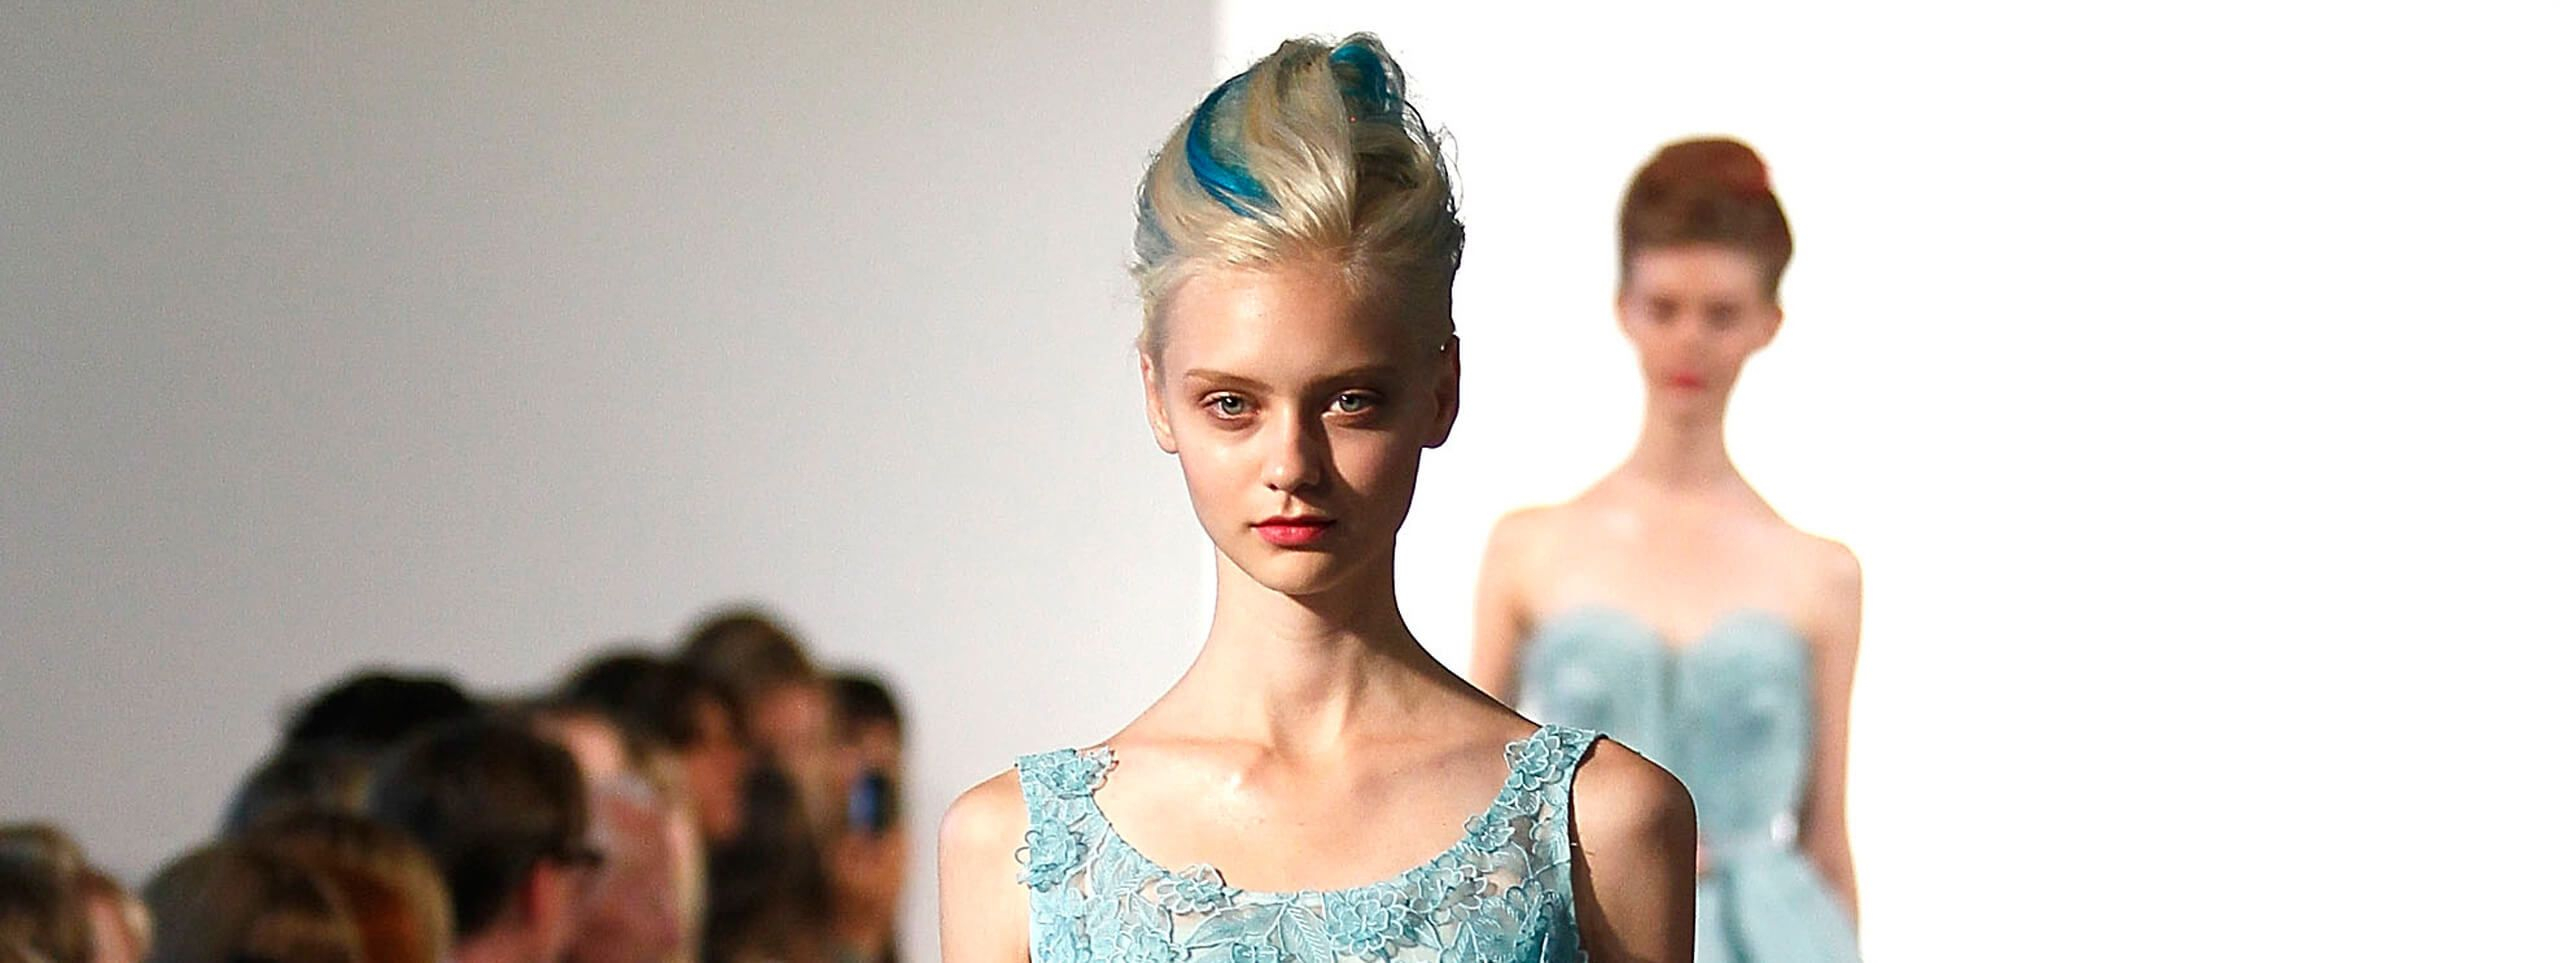 Model accentuates blonde updo hairstyle with blue streaks